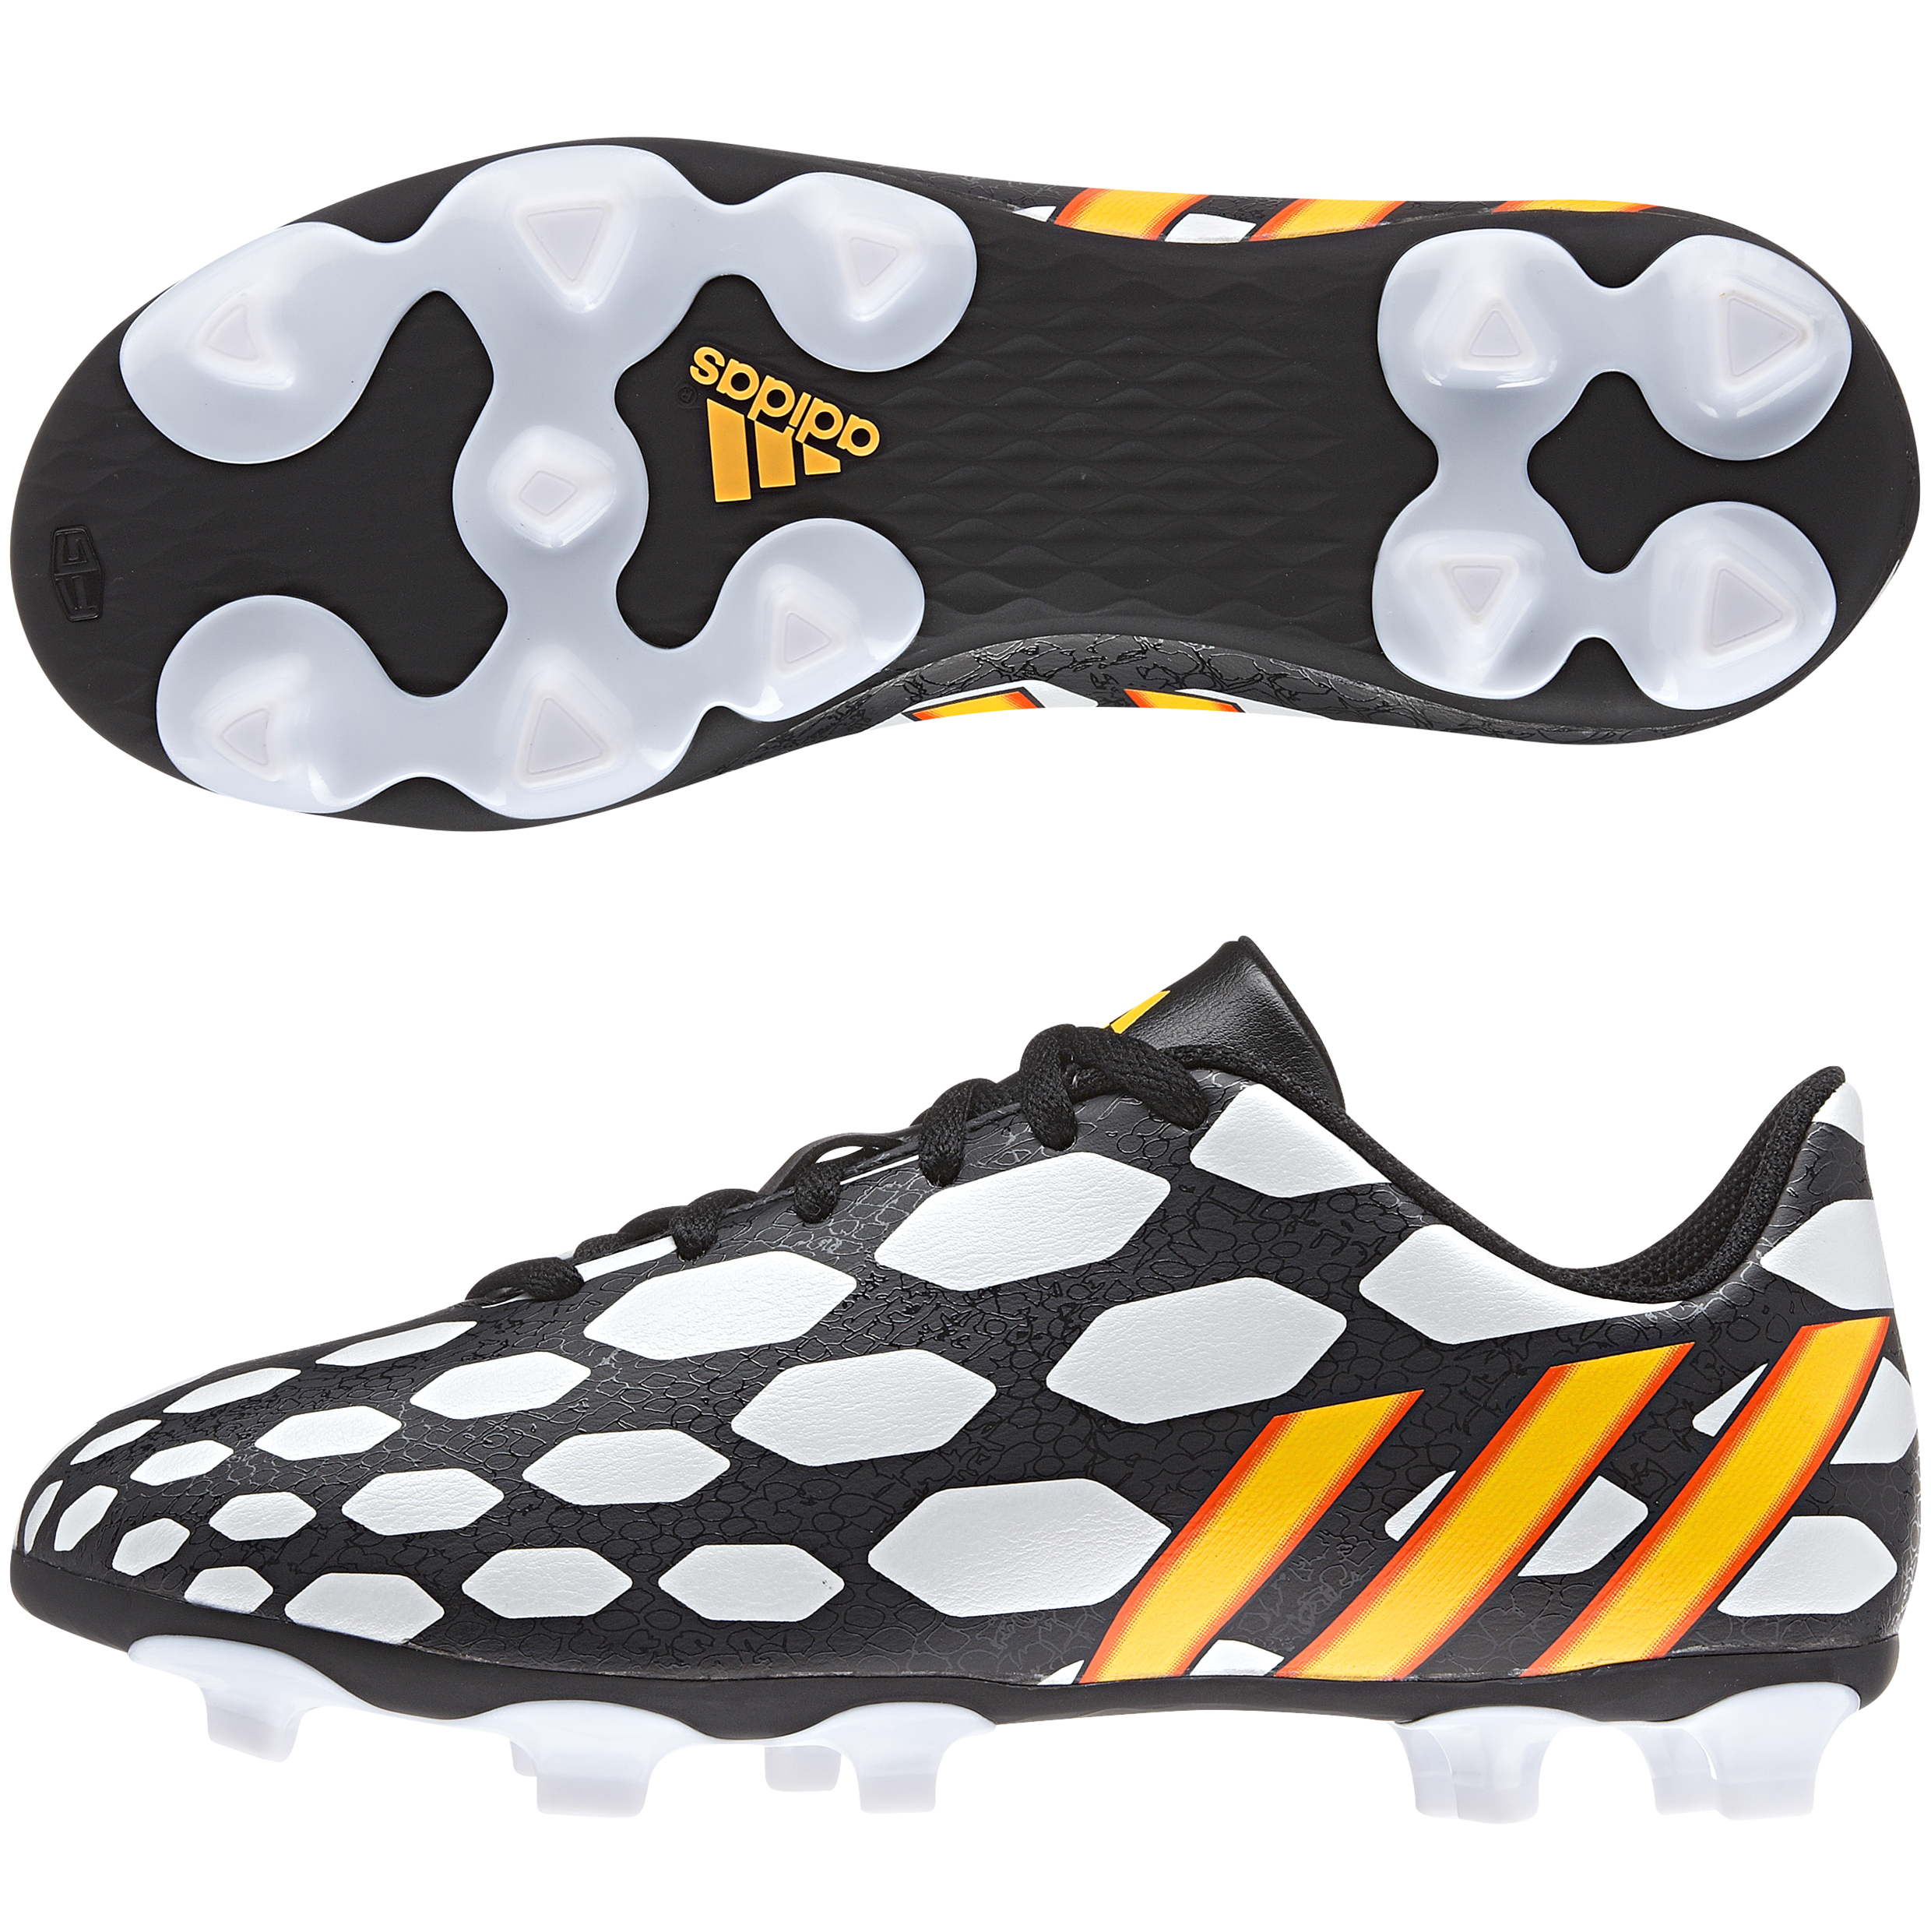 Adidas Predito LZ World Cup 2014 Firm Ground Football Boots - Kids Black